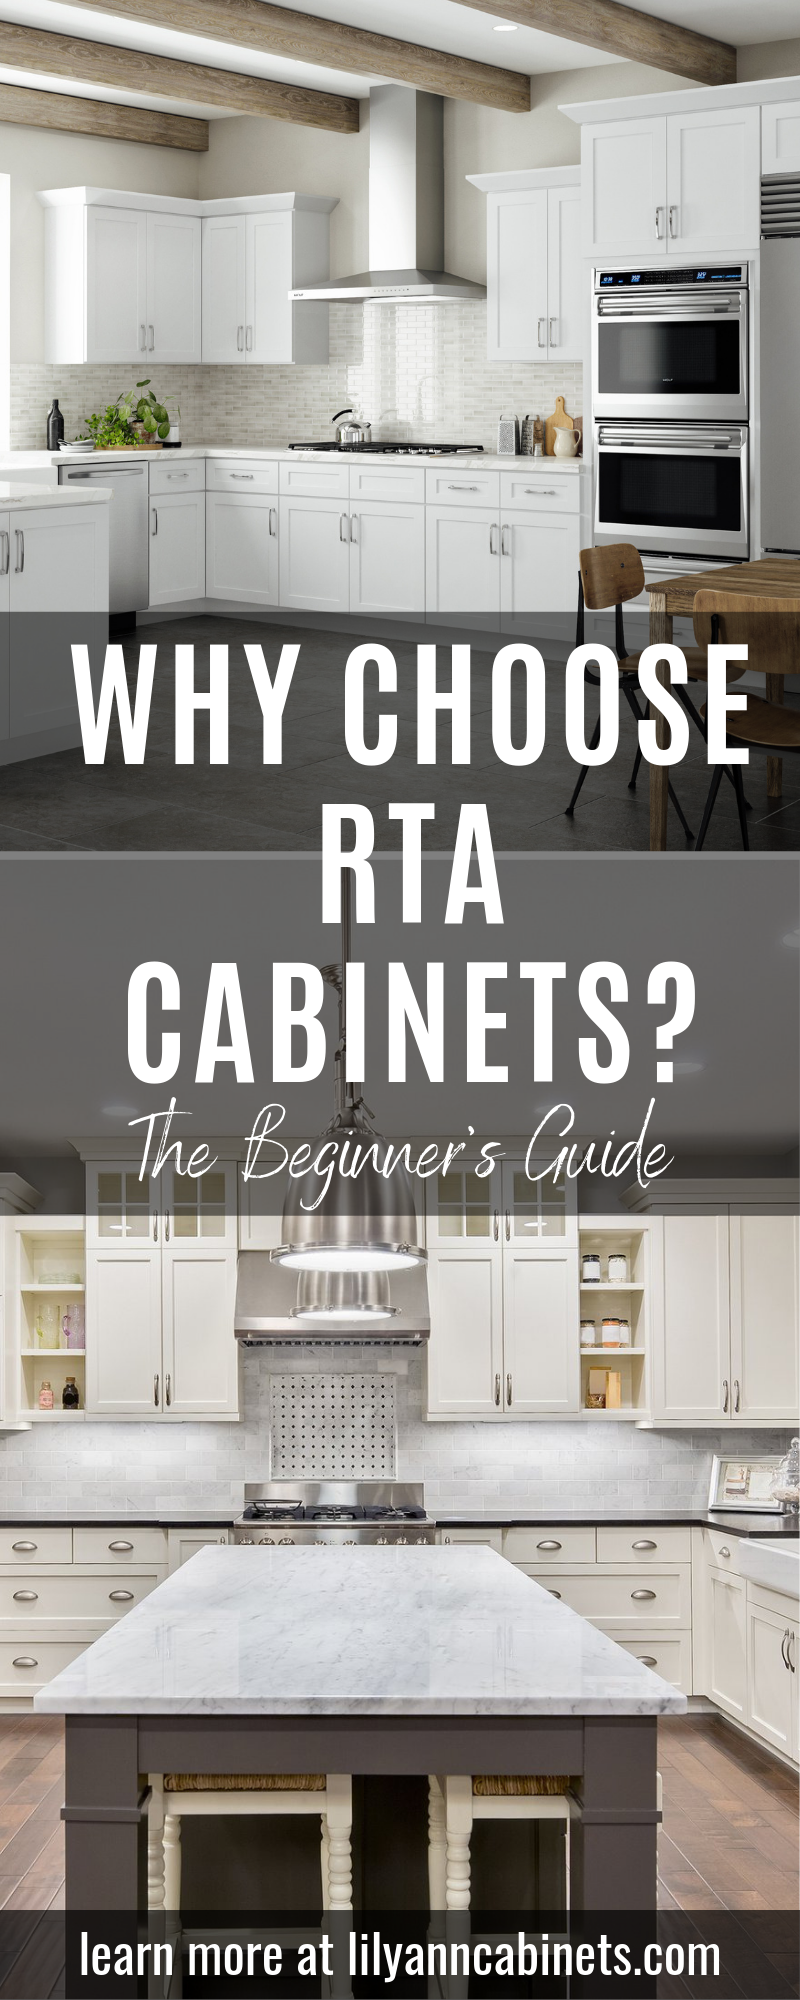 Why Choose Rta Cabinets A Beginner S Guide Rta Cabinets